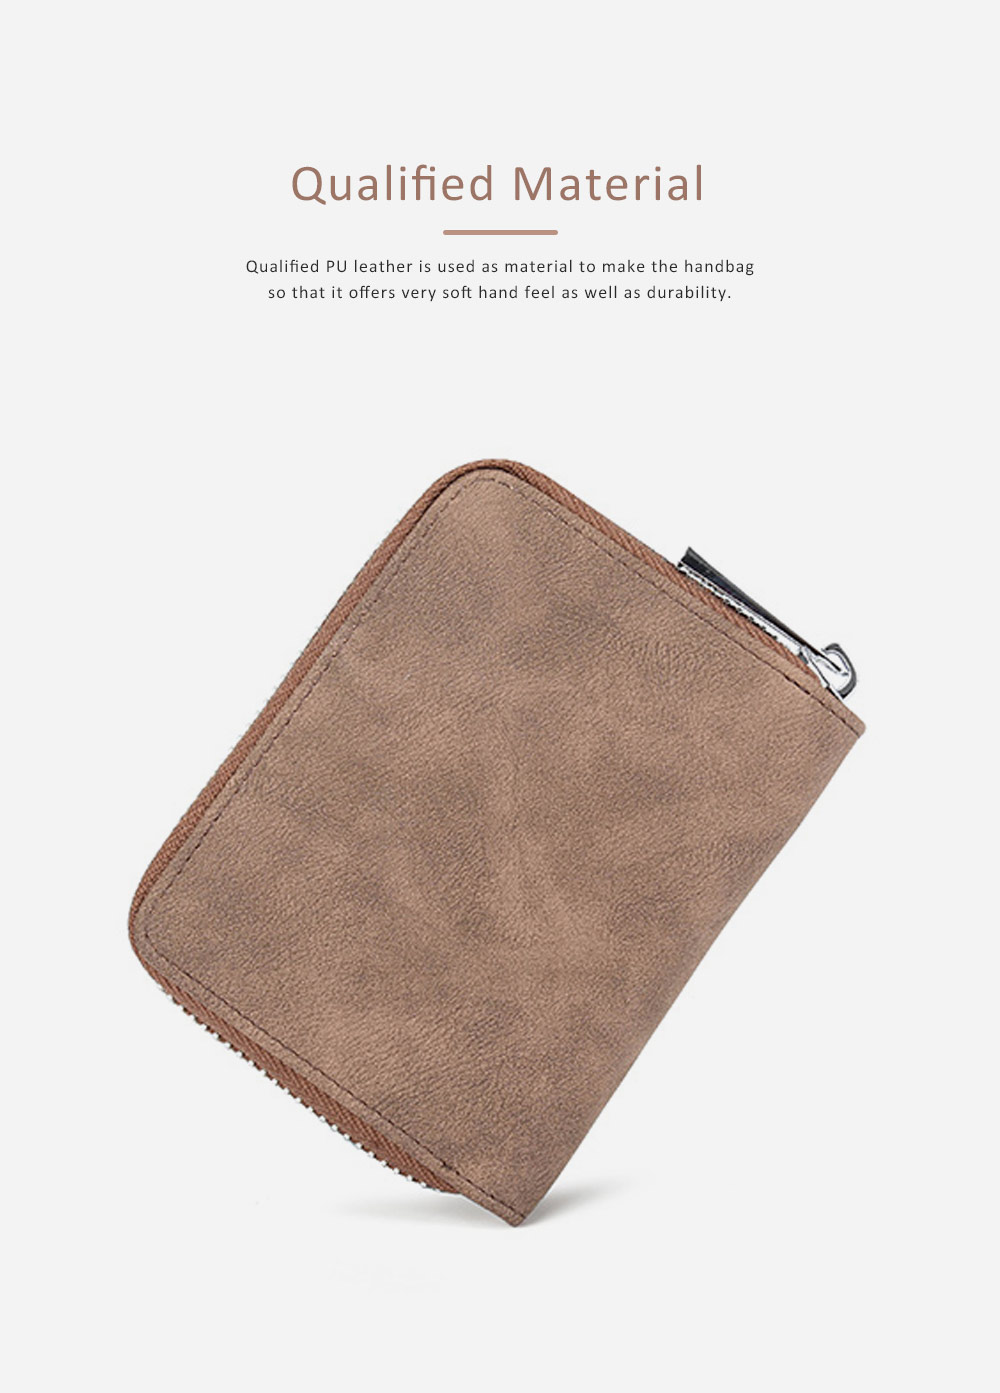 Mini PU Leather Purse, Short Purse with Zipper, Card Slots, Multifunctional Purse for Coins, Cash, Credit Cards 5